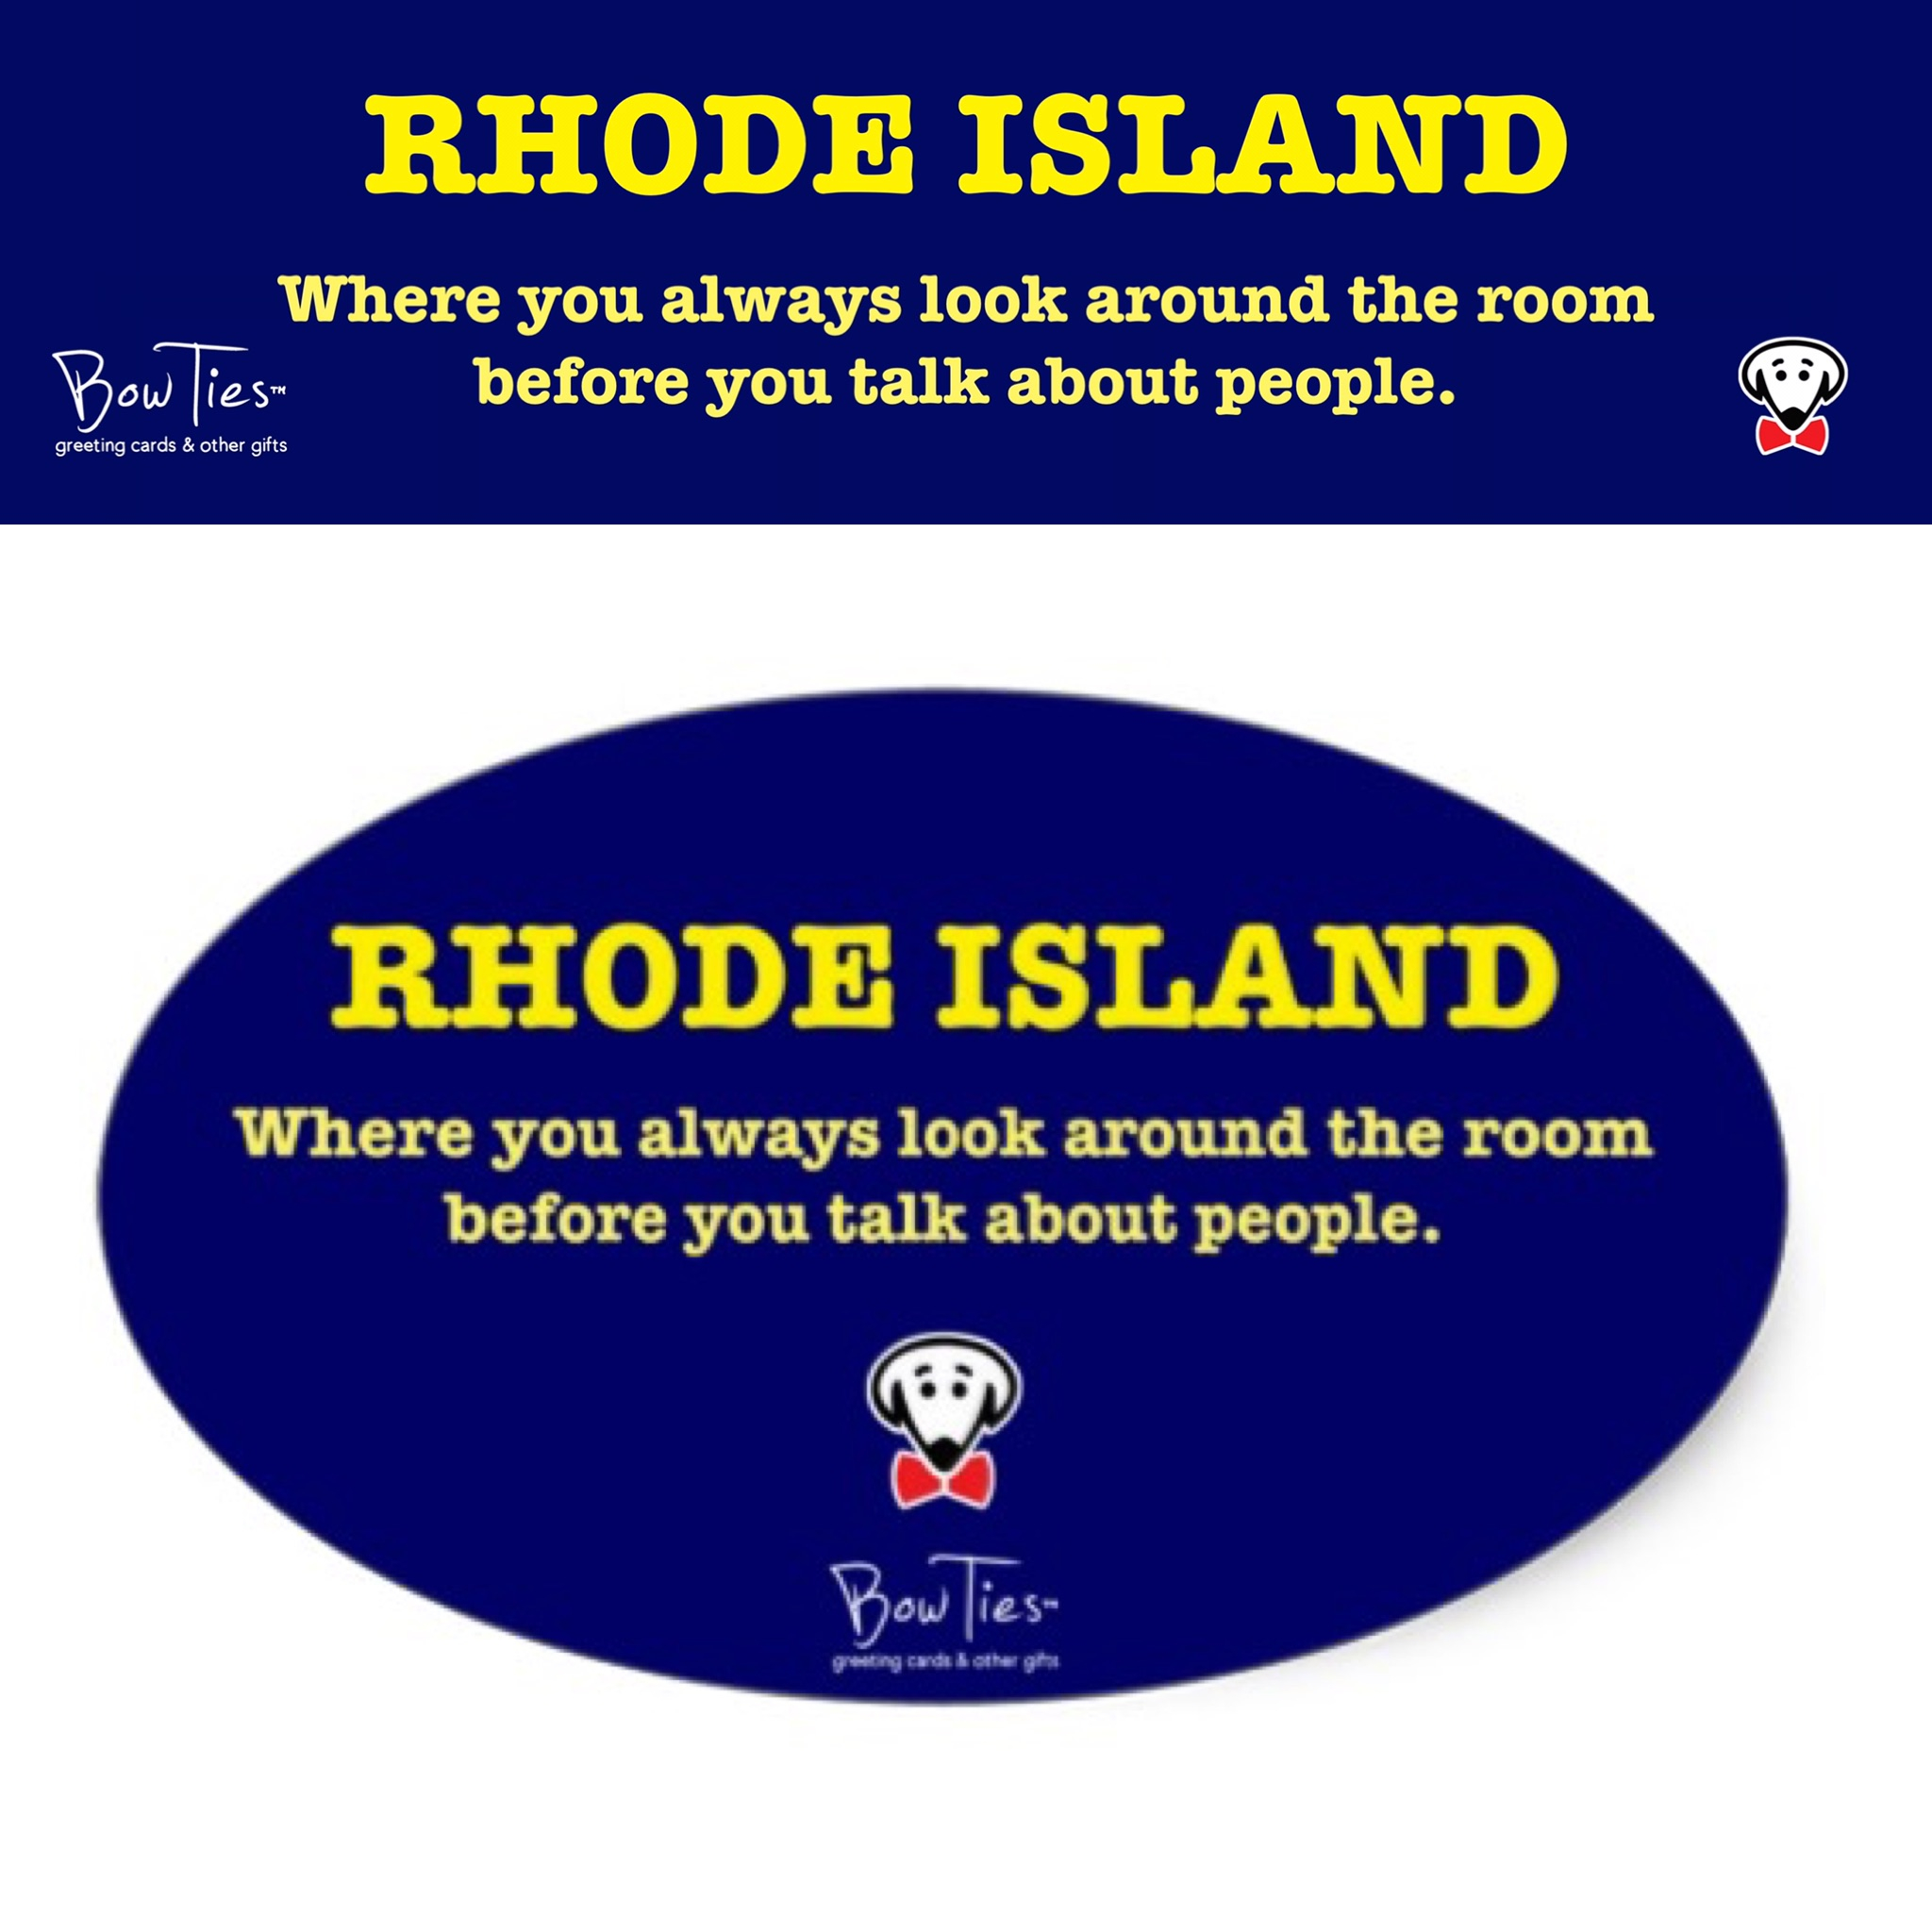 RHODE ISLAND Where you always look around the room before you talk about people. – sticker